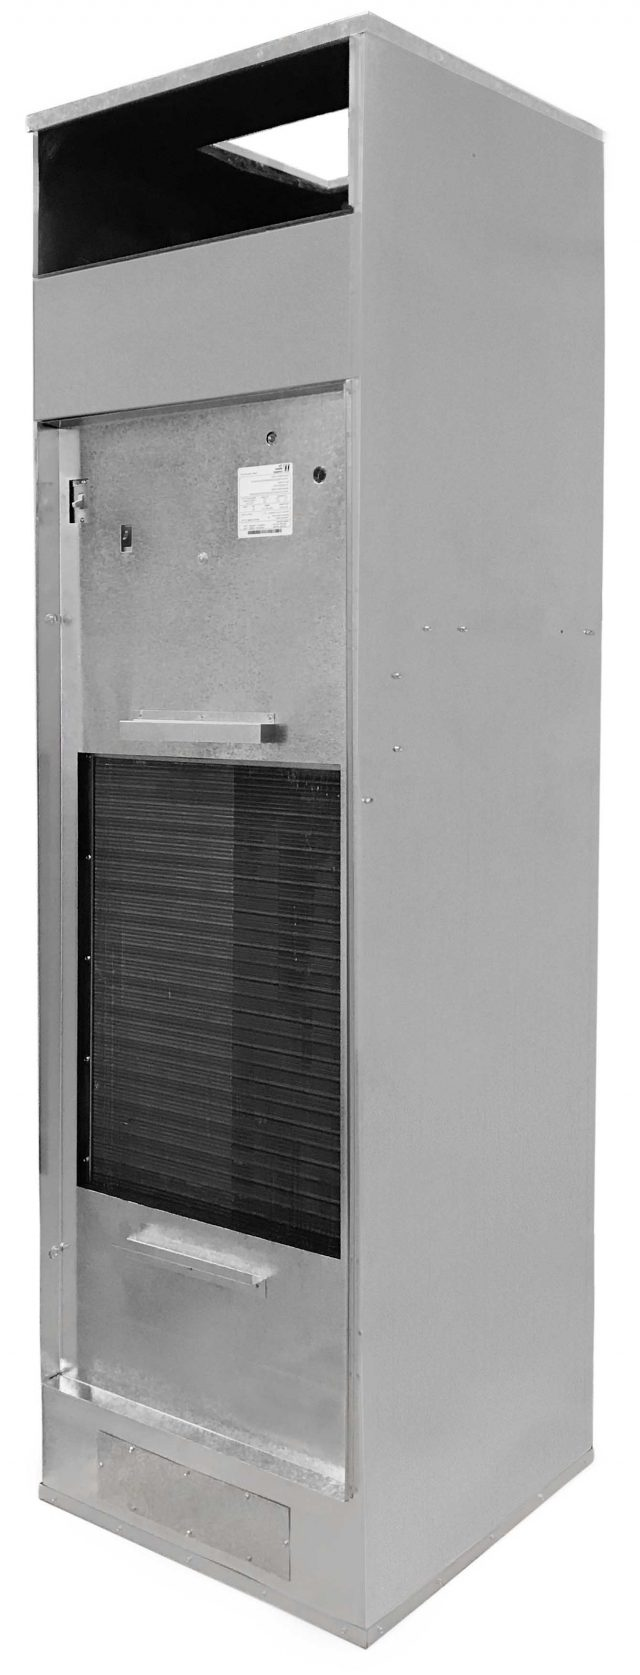 Whisperline Two-Stage Water Source Heat Pump Toronto HVAC